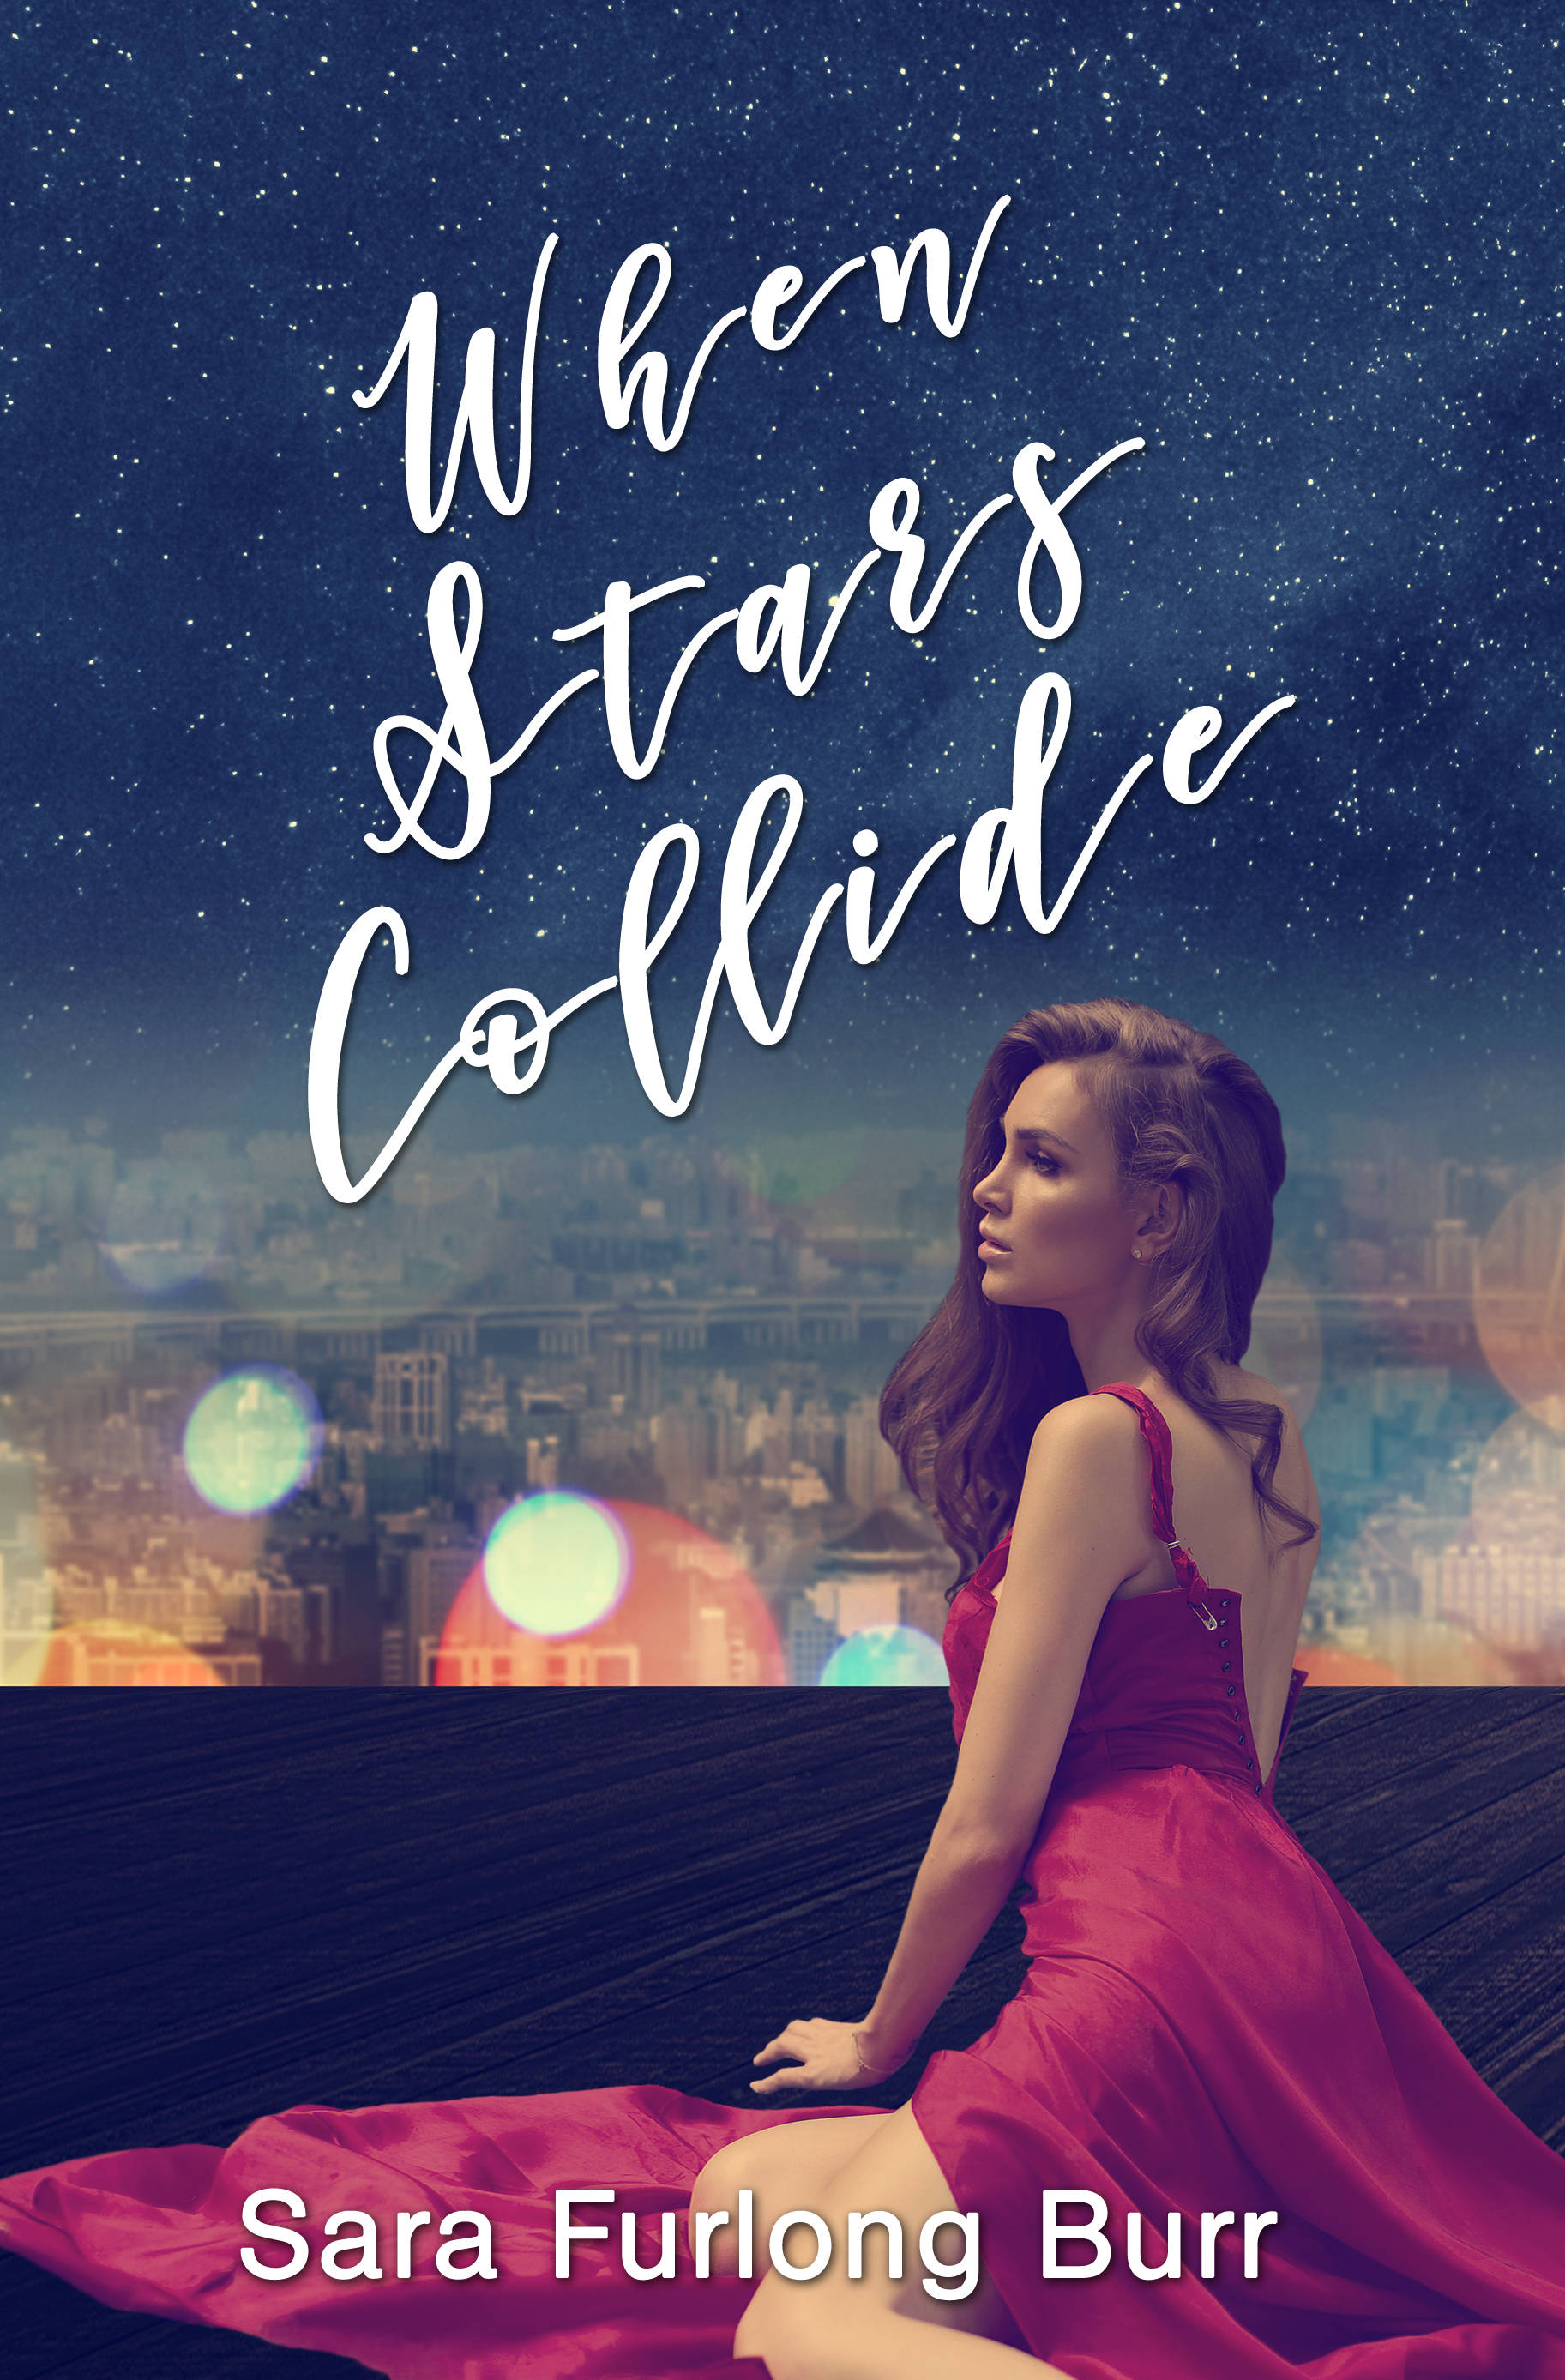 When Stars Collide - Sara Furlong Burr